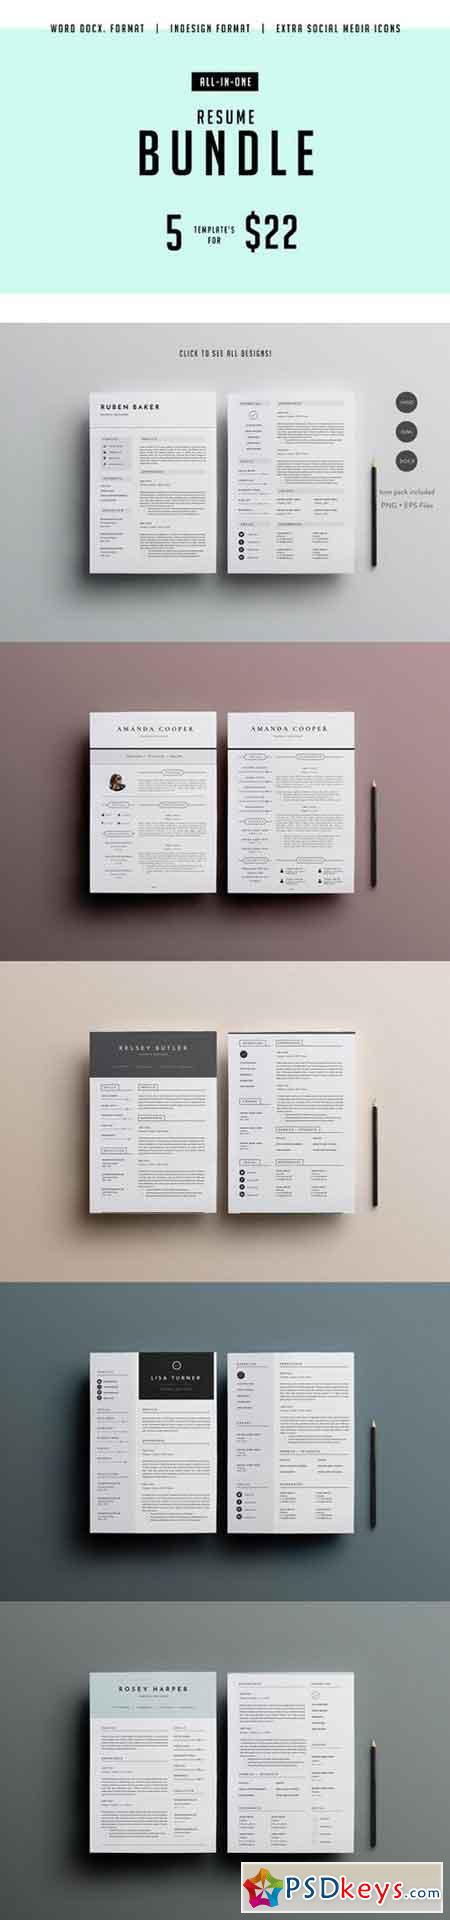 major resume bundle indd   docx 777039  u00bb free download